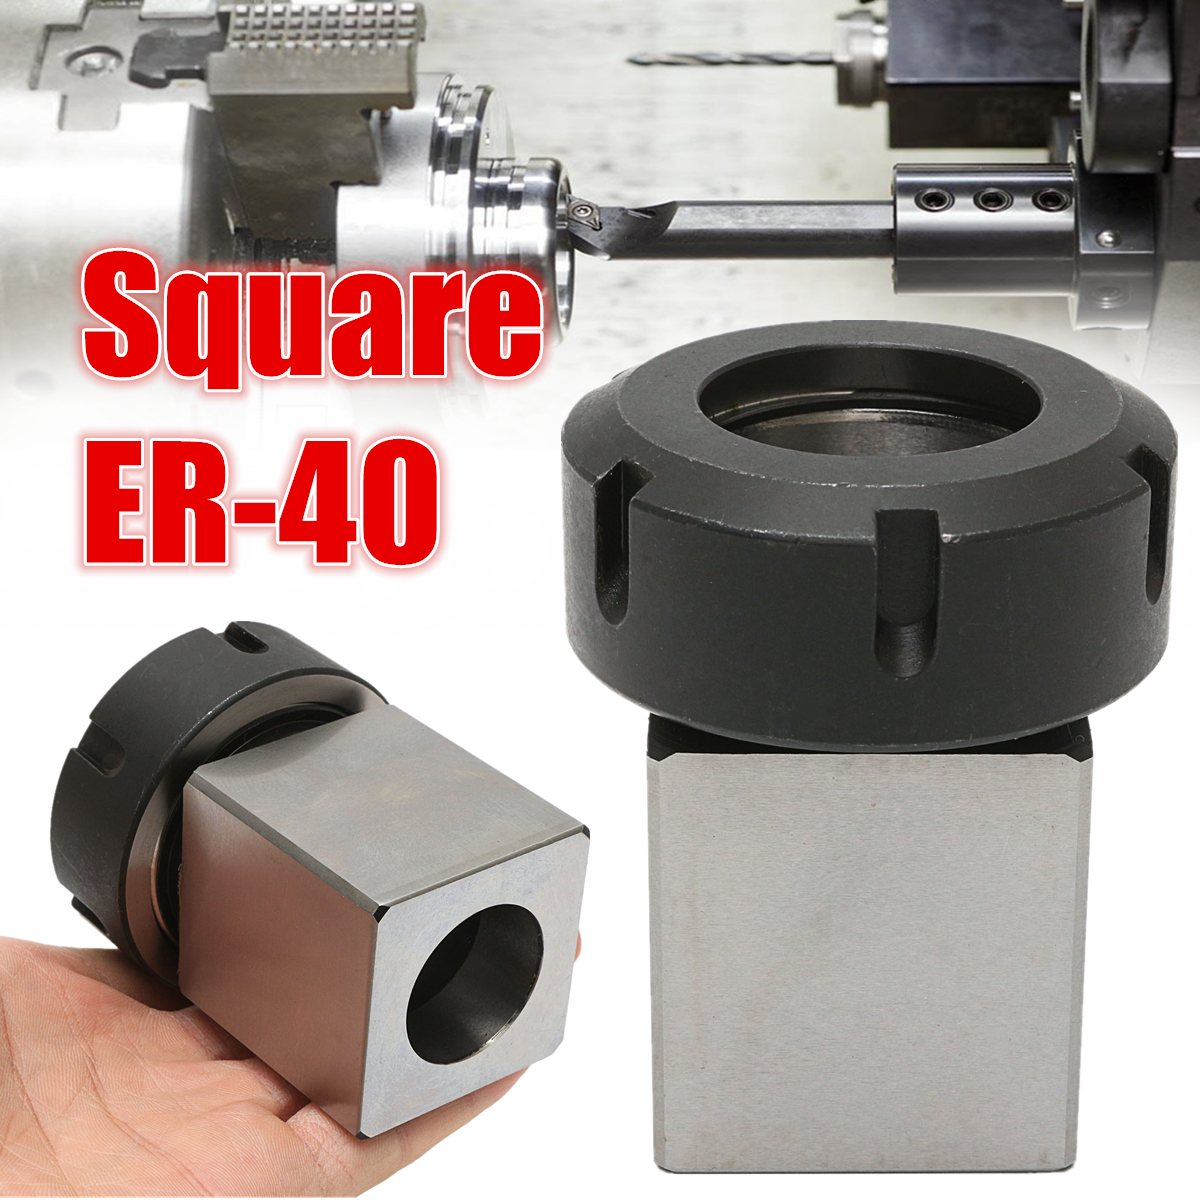 New High Strength ER-40 3900-5125 Square Collet Chuck Block Holder For CNC Lathe Engraving Machine CNC Machines useful 15pcs set 2mm 16mm er25 precision spring collet for lathe chuck for cnc milling engraving machine best price